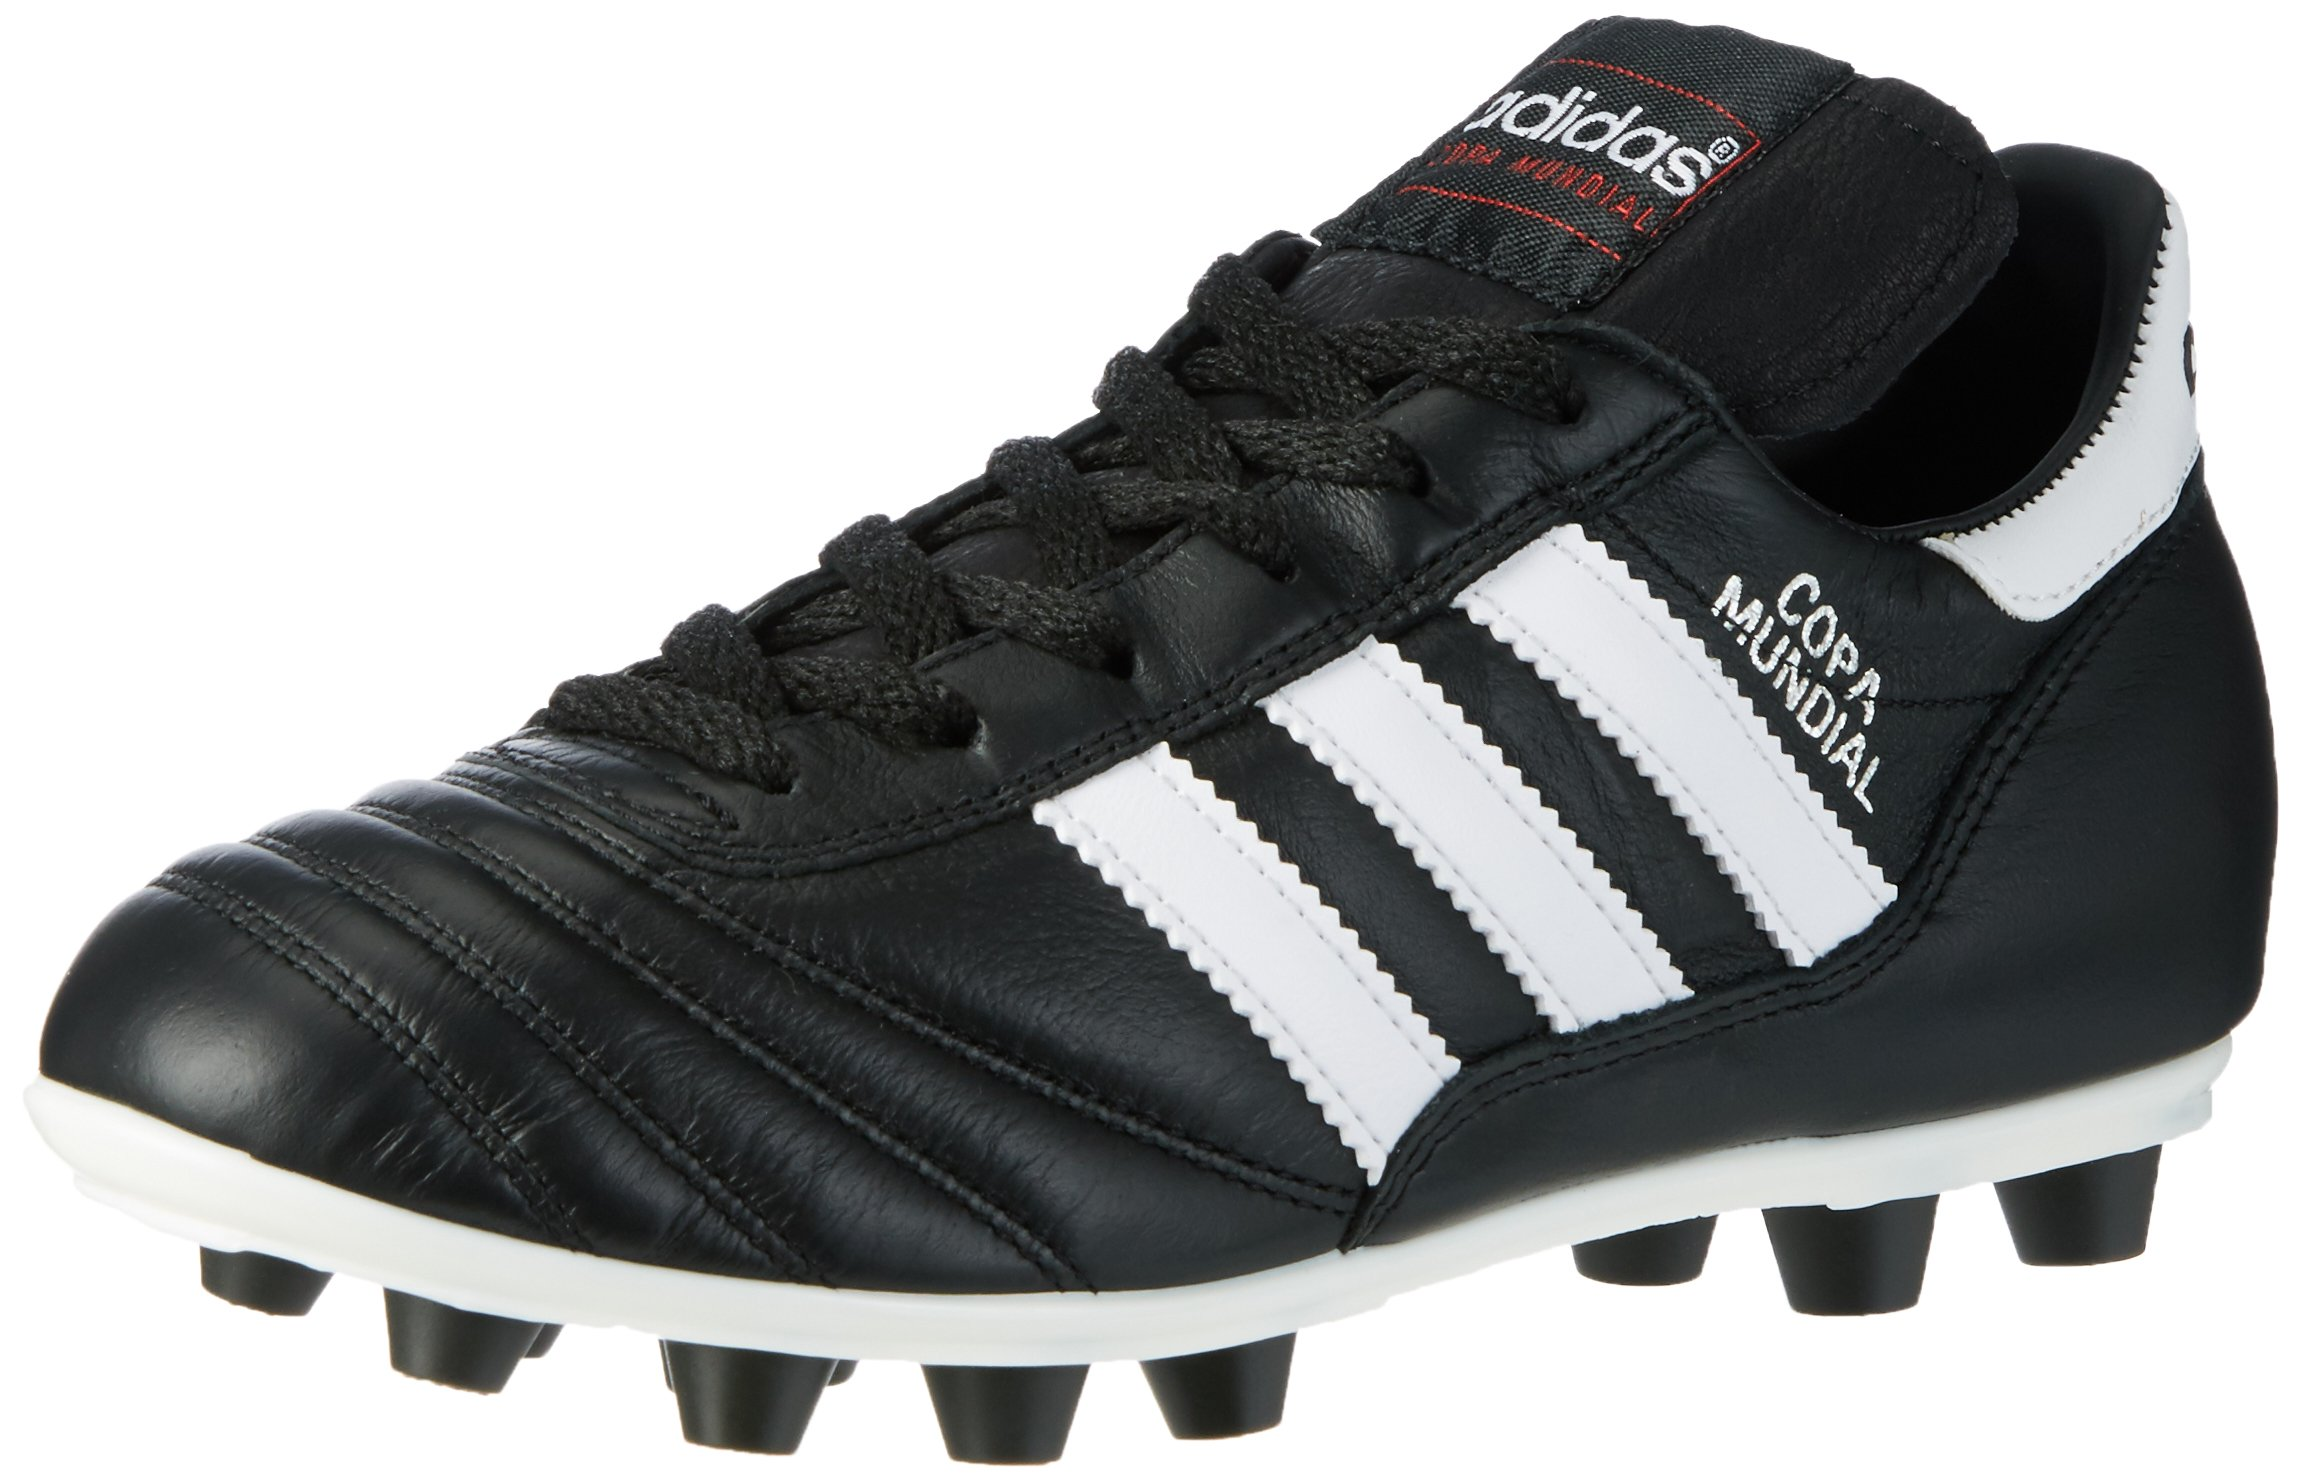 Adidas Kids Soccer Shoes Used